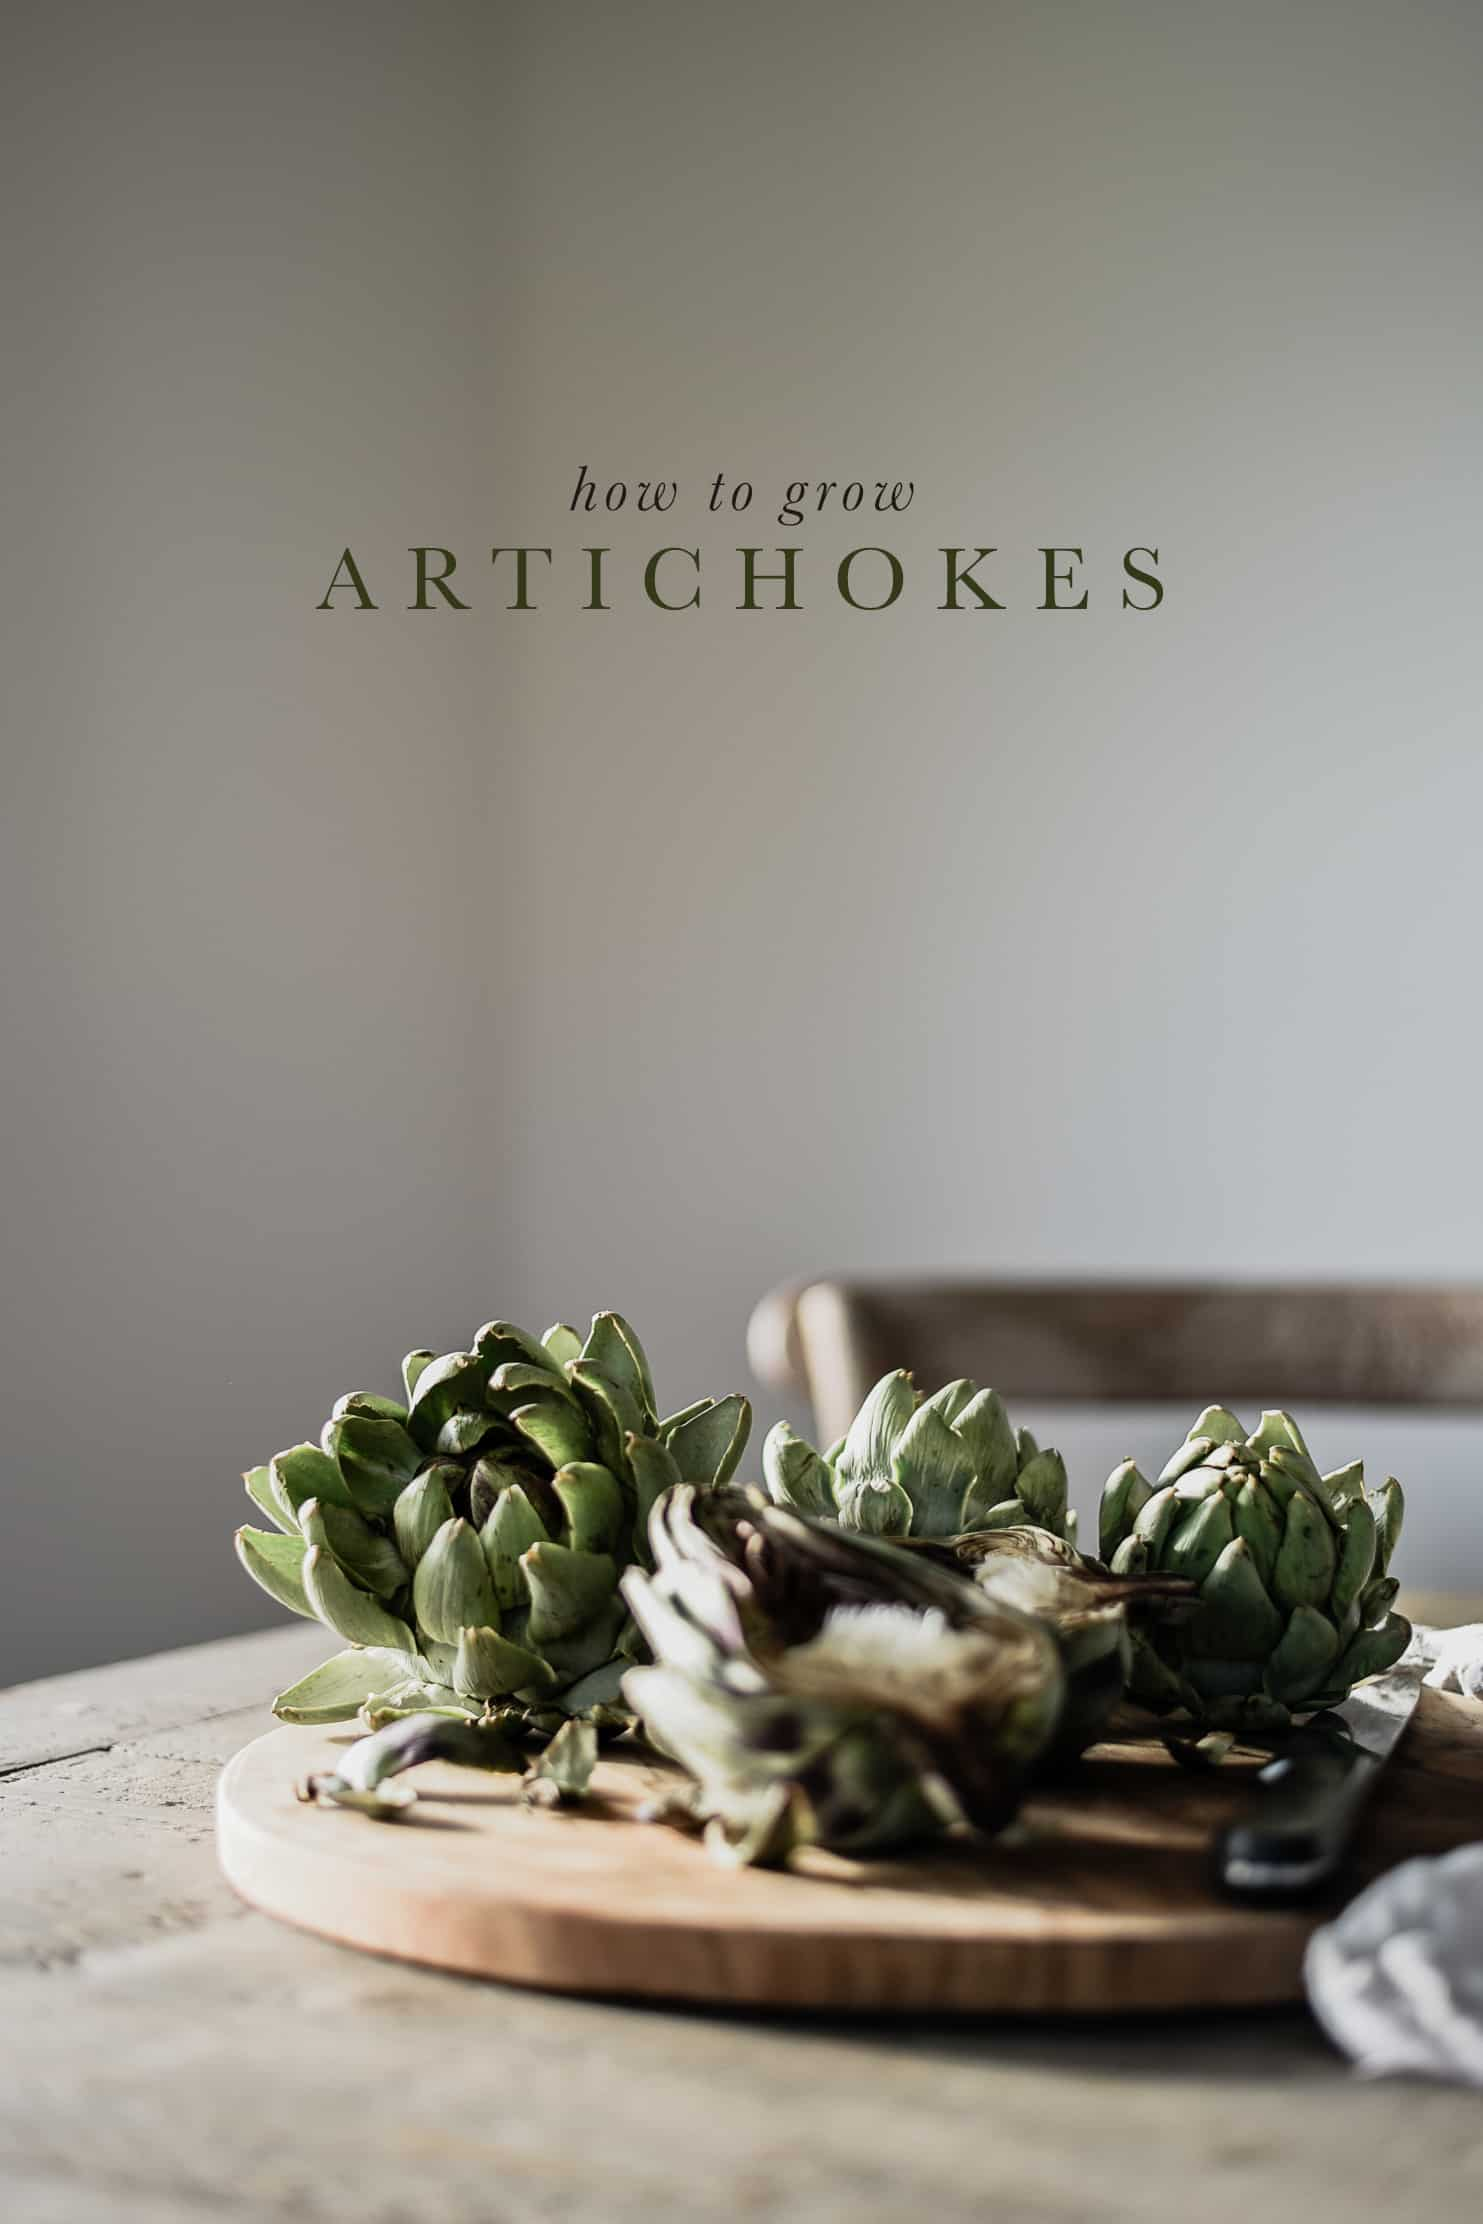 Artichokes are a hearty vegetable that can be grown in any climate, and enjoyed throughout fall!Follow this guide to learn how to grow artichokes in your garden!